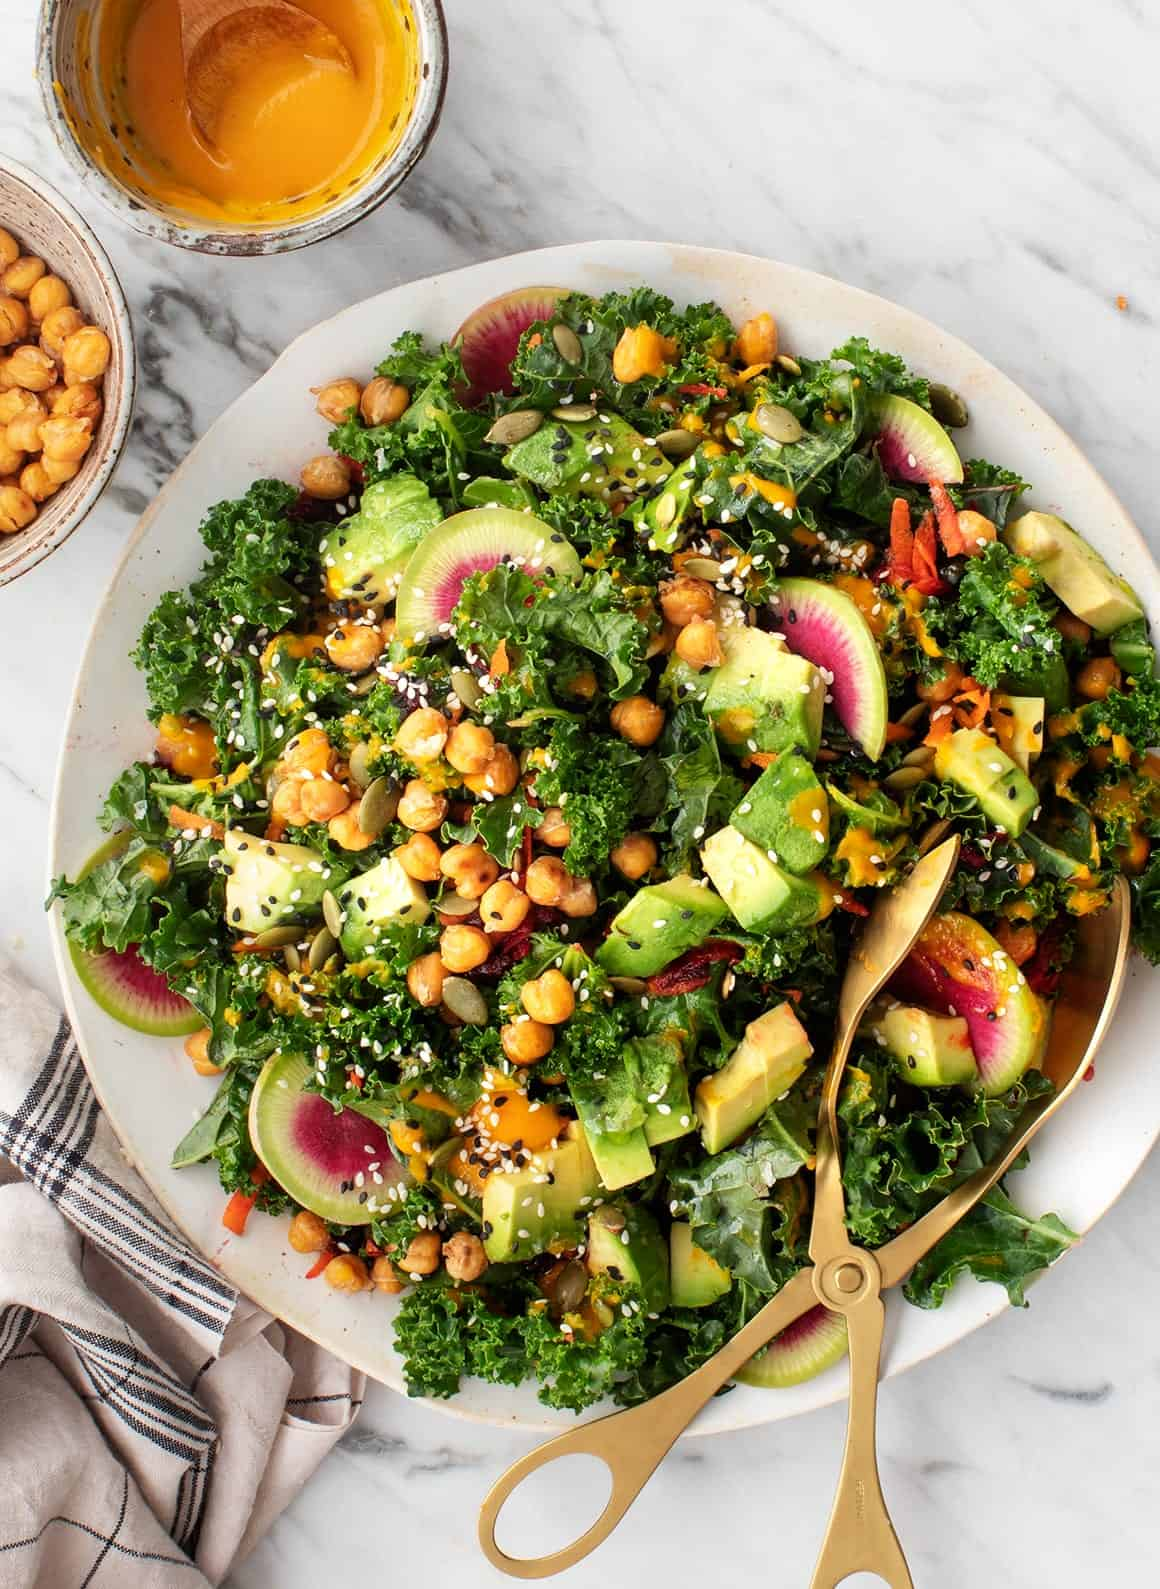 Rainbow Kale Salad with Carrot-Ginger Dressing